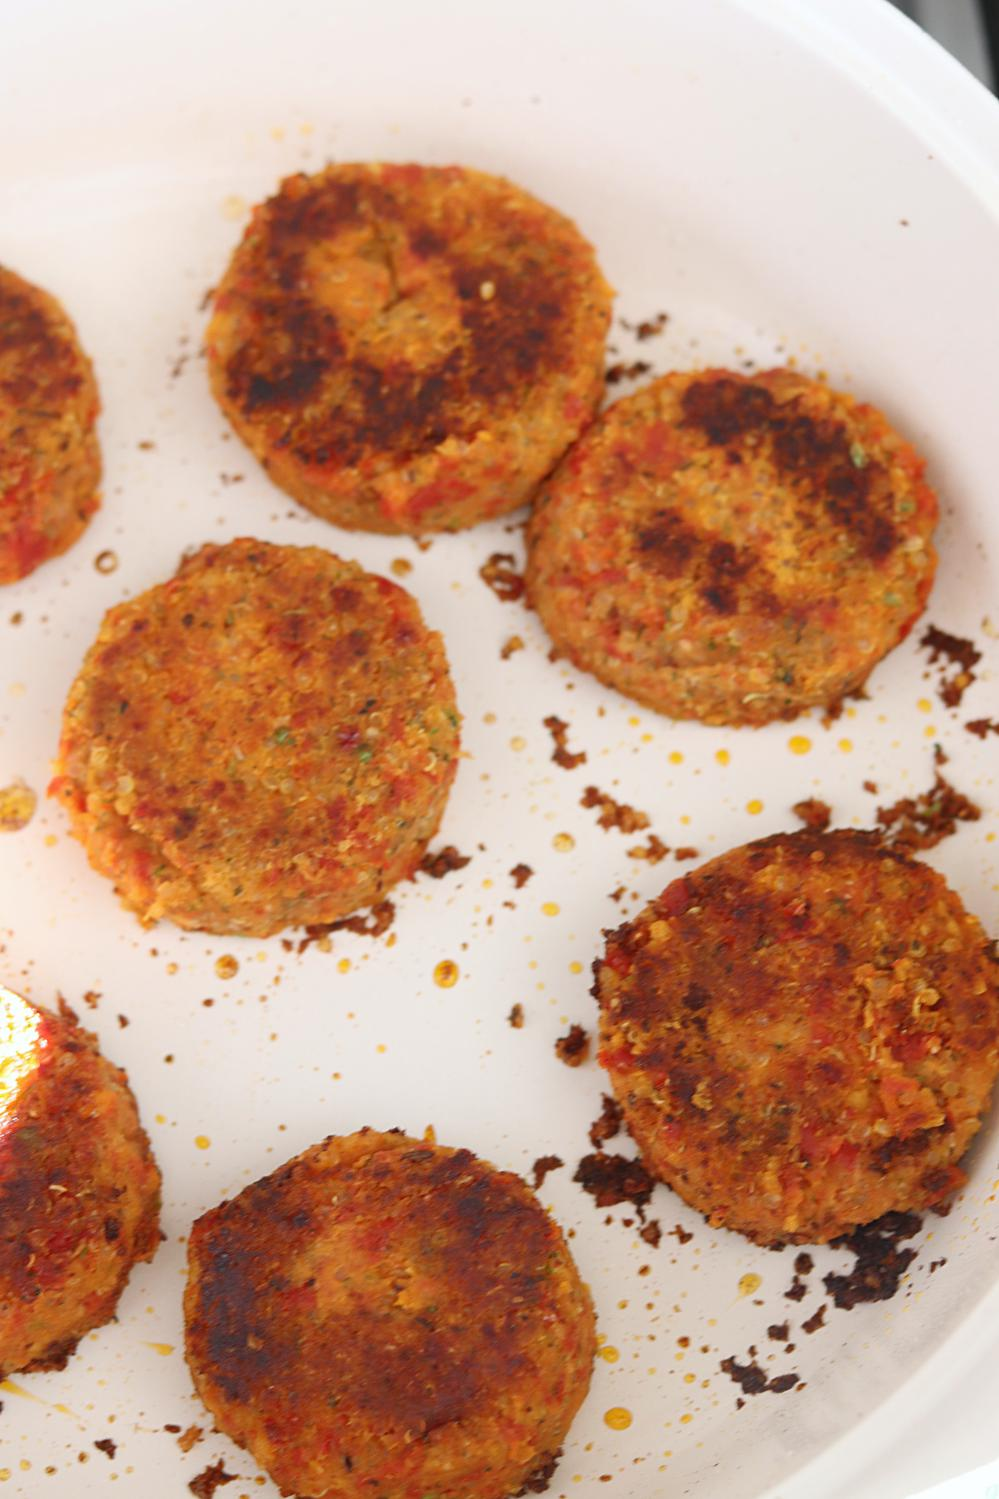 Cook the chickpea patties